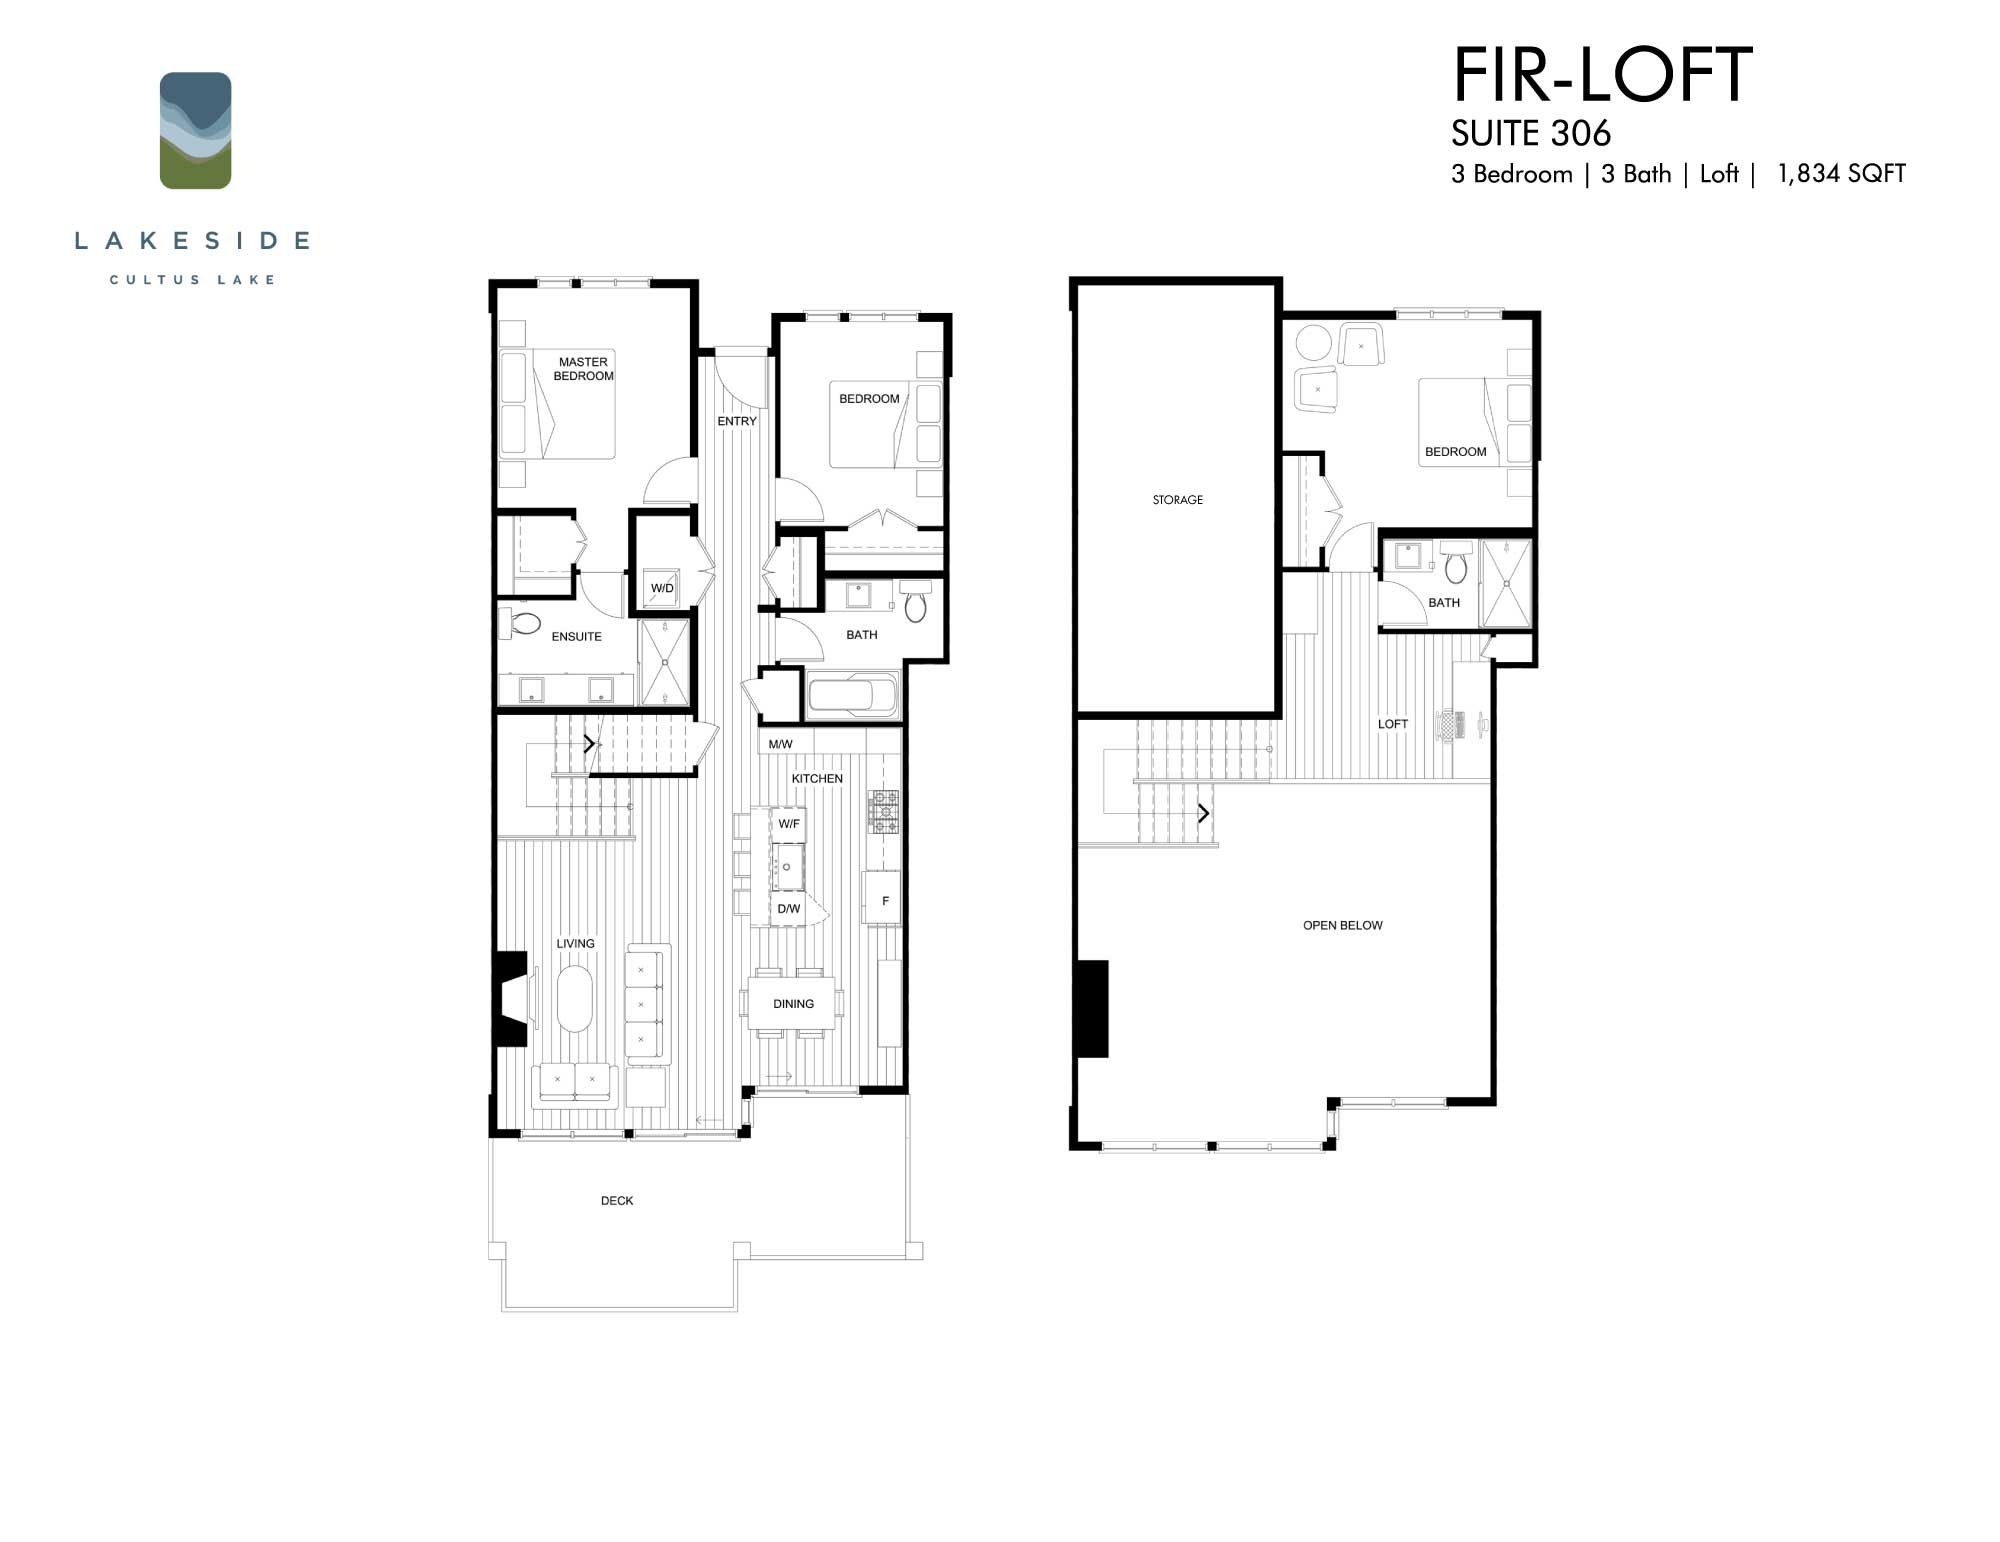 Copy of FIR LOFT - $1,699,900